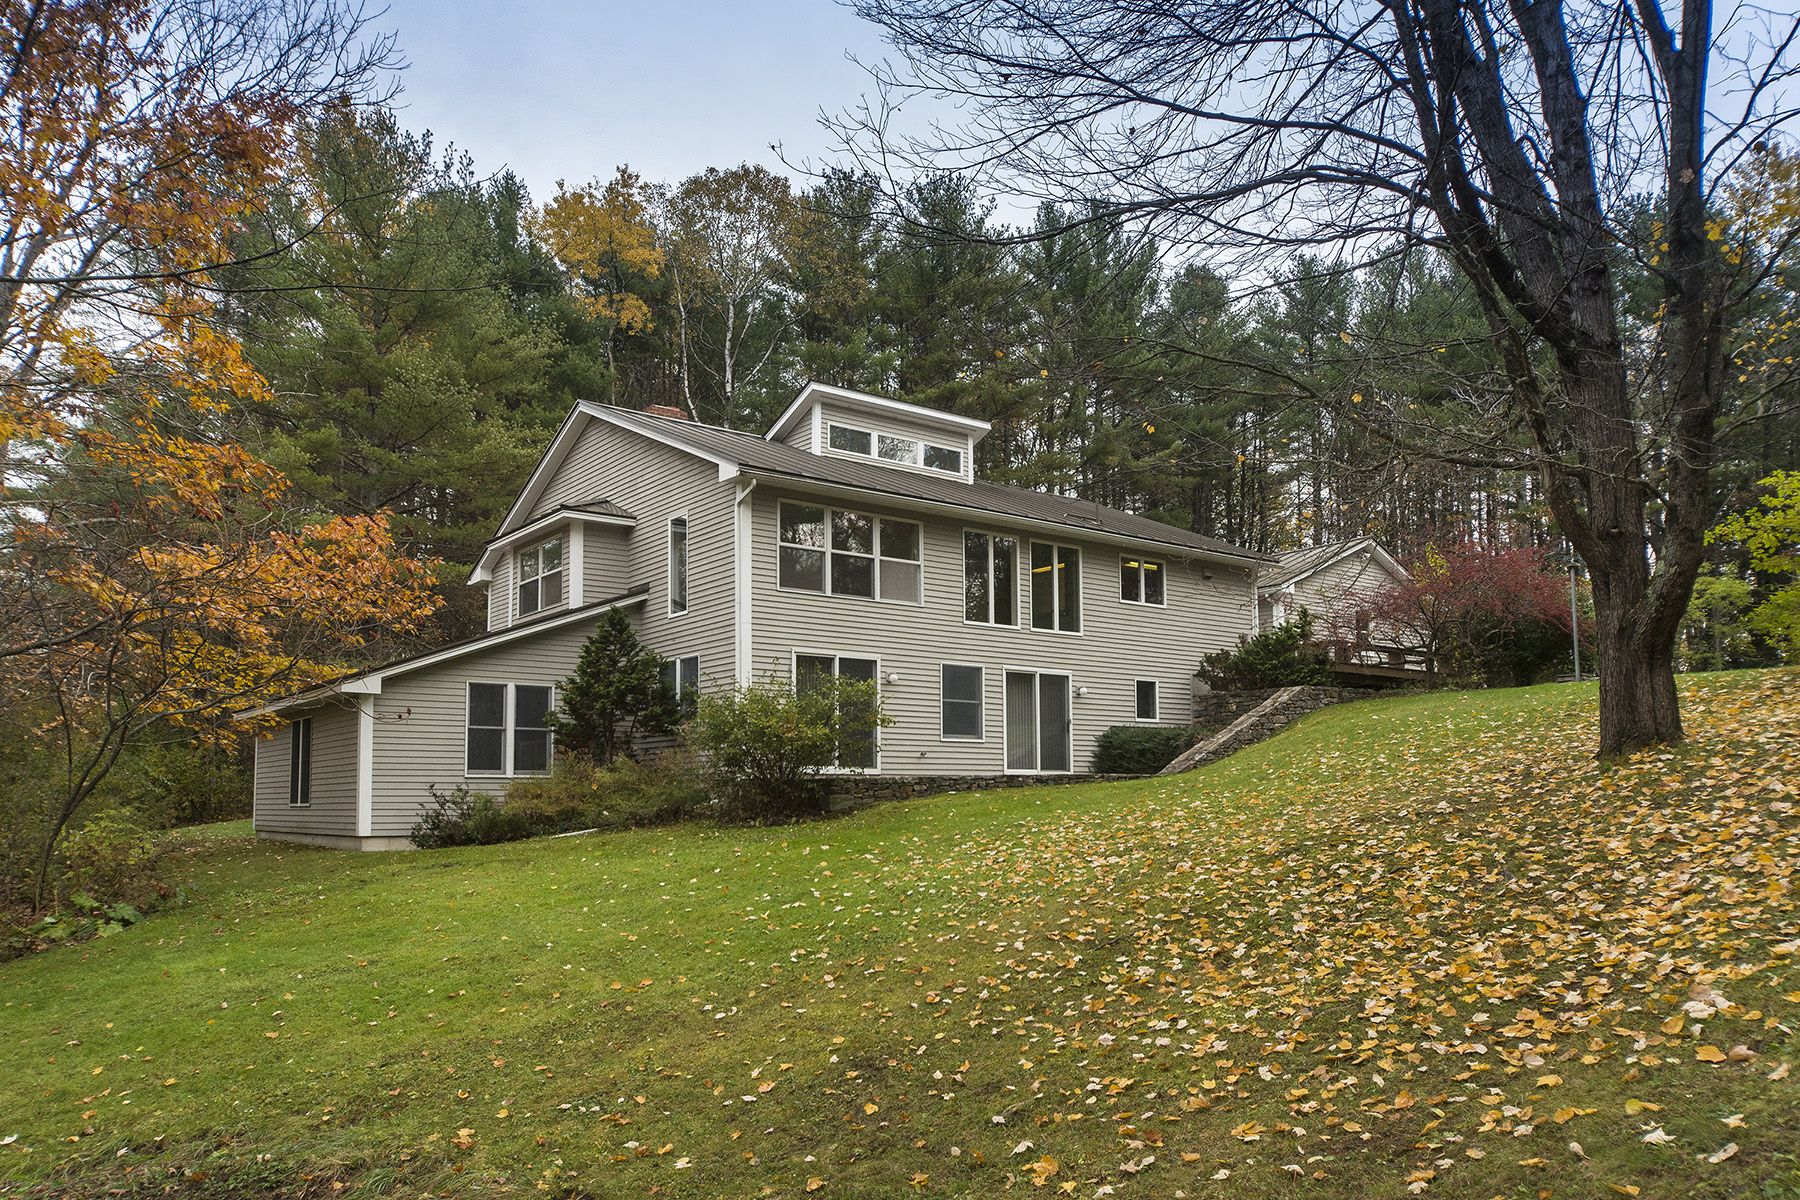 Single Family Home for Sale at 15 Frye Drive Cumberland, Maine, 04021 United States